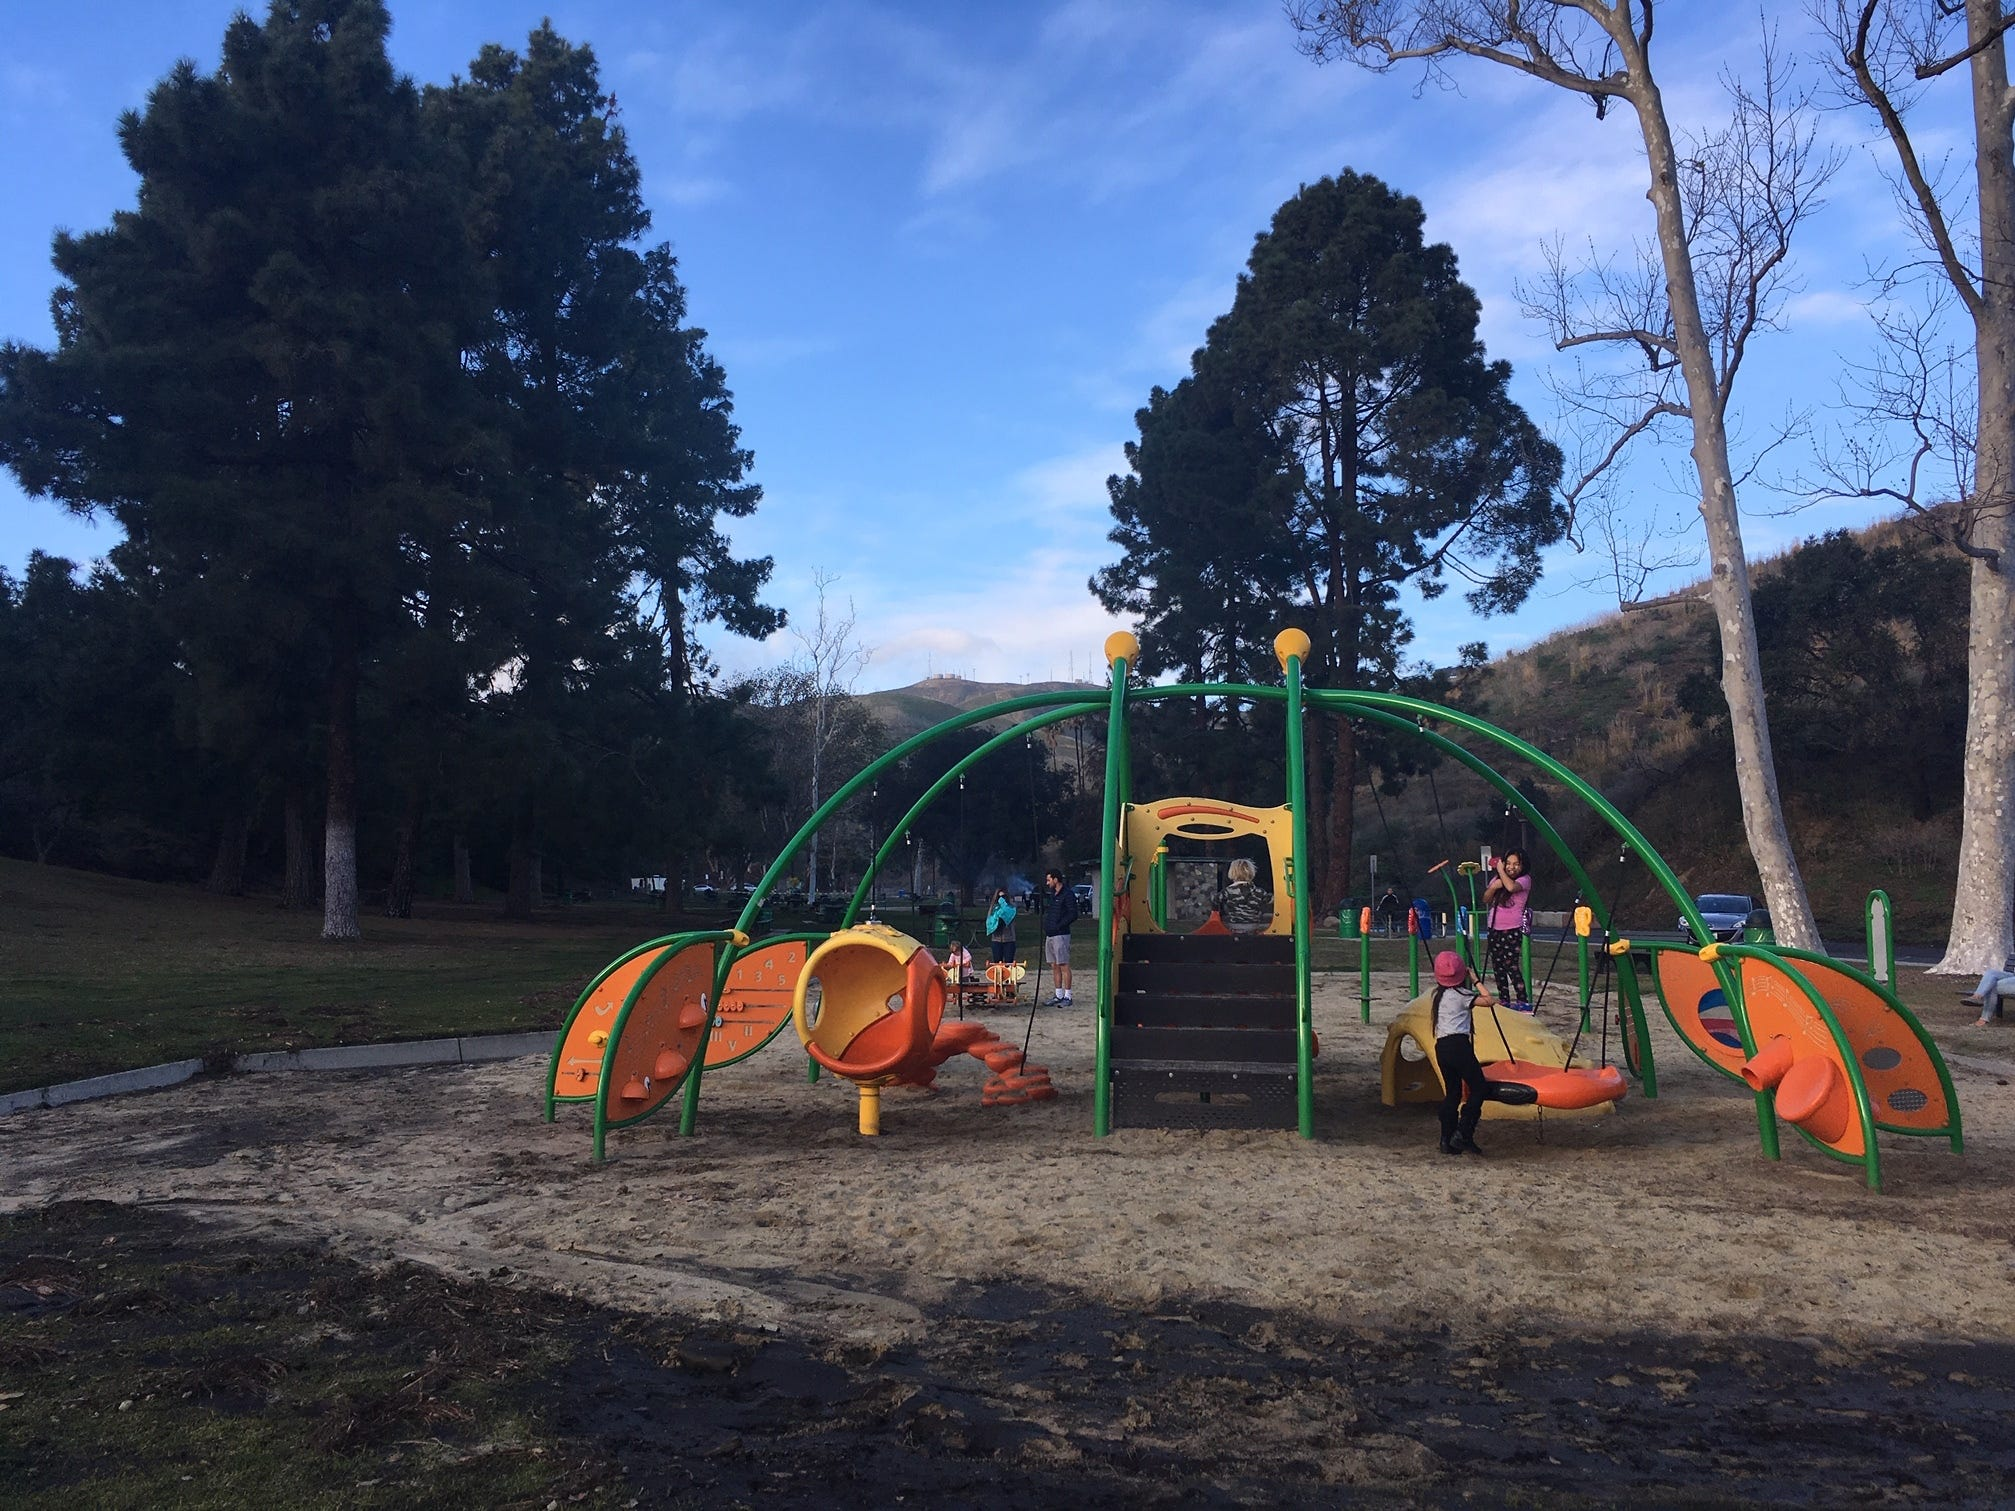 Another playground at Arroyo Verde Park in Ventura.